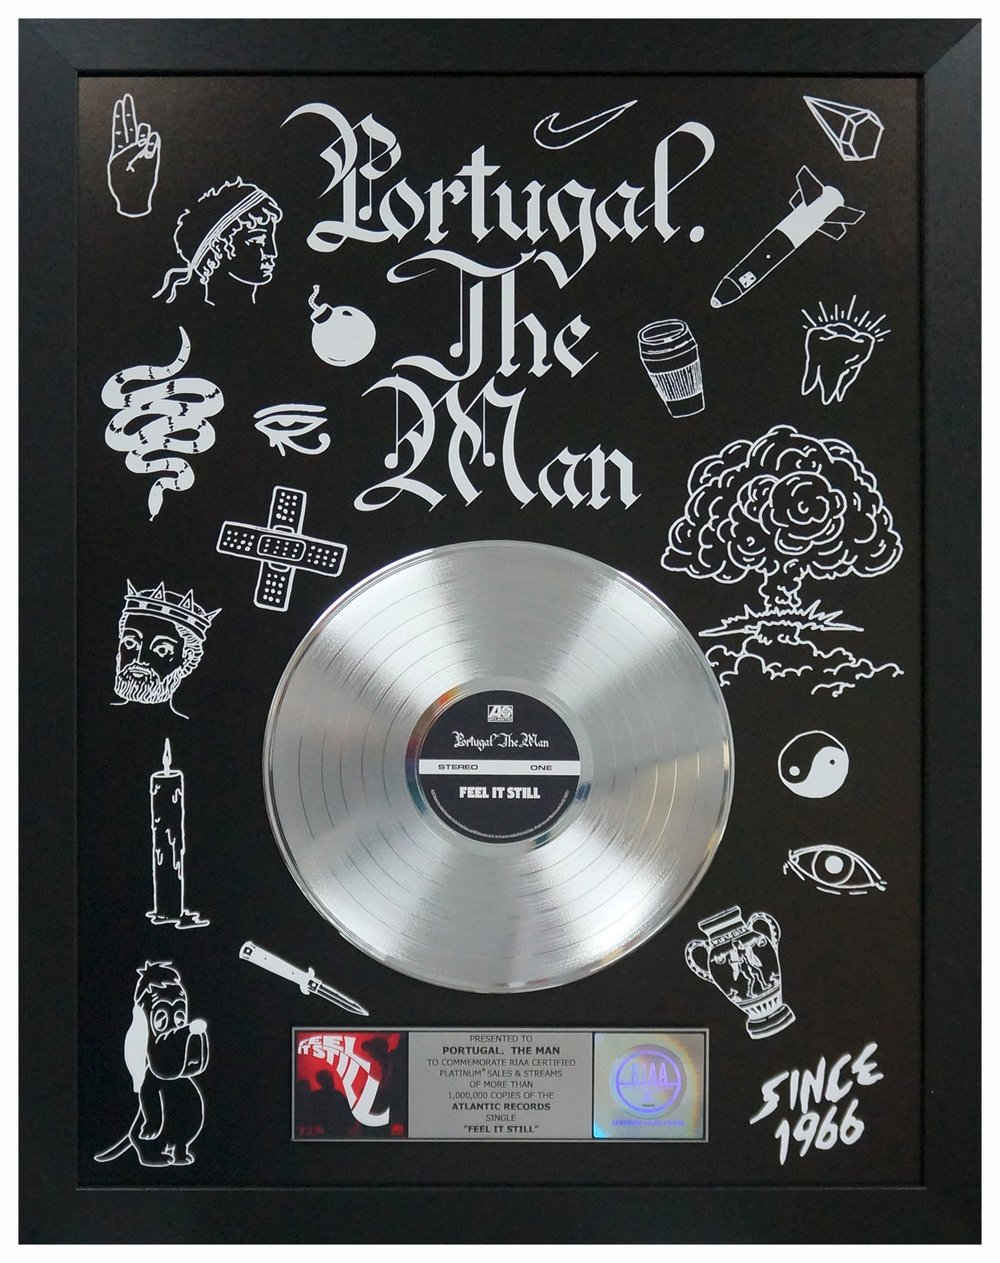 Portugal The Man plaque.jpg